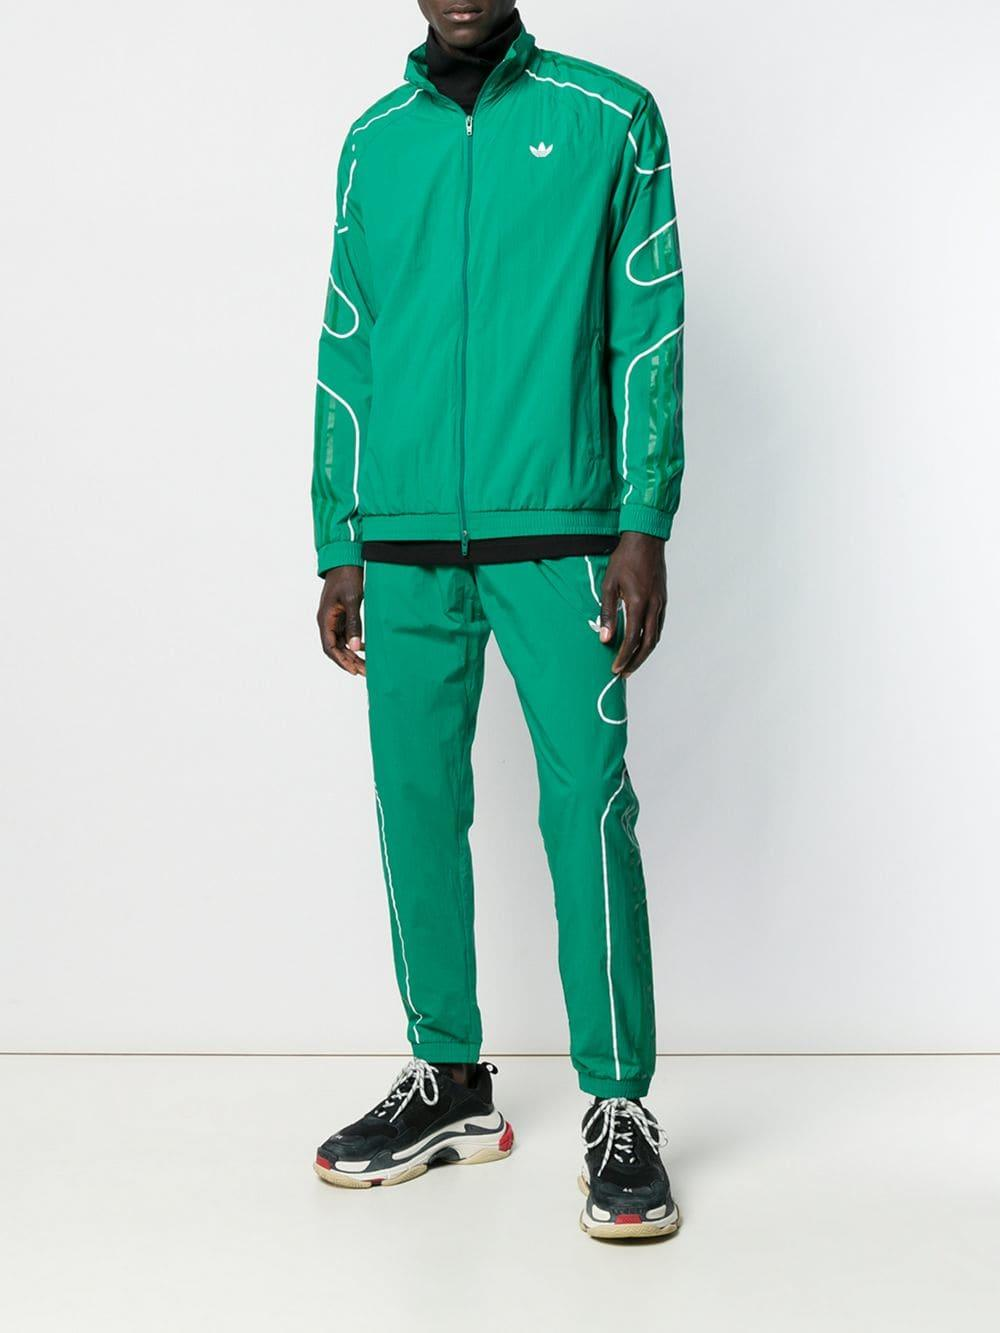 21f825e56 Lyst - adidas Zip-up Logo Jacket in Green for Men